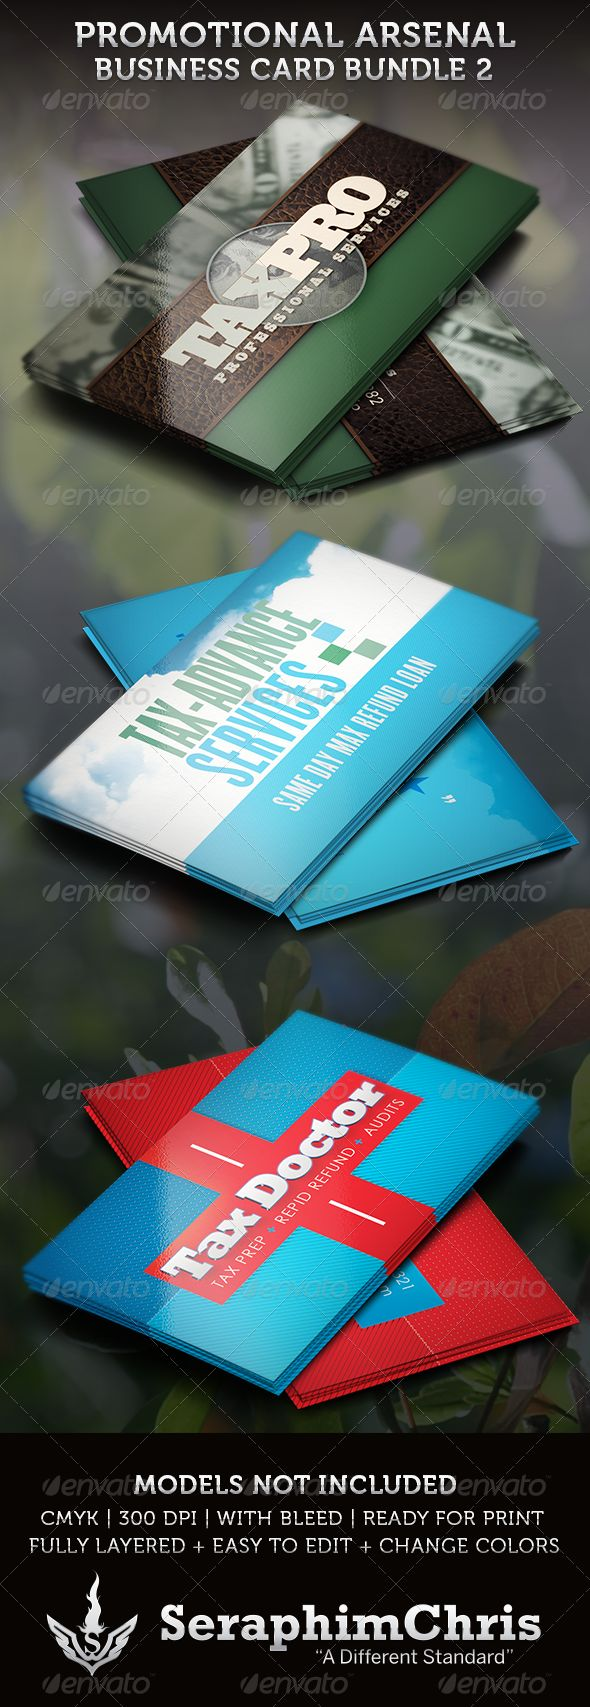 19 best Business card images on Pinterest | All you need is ...